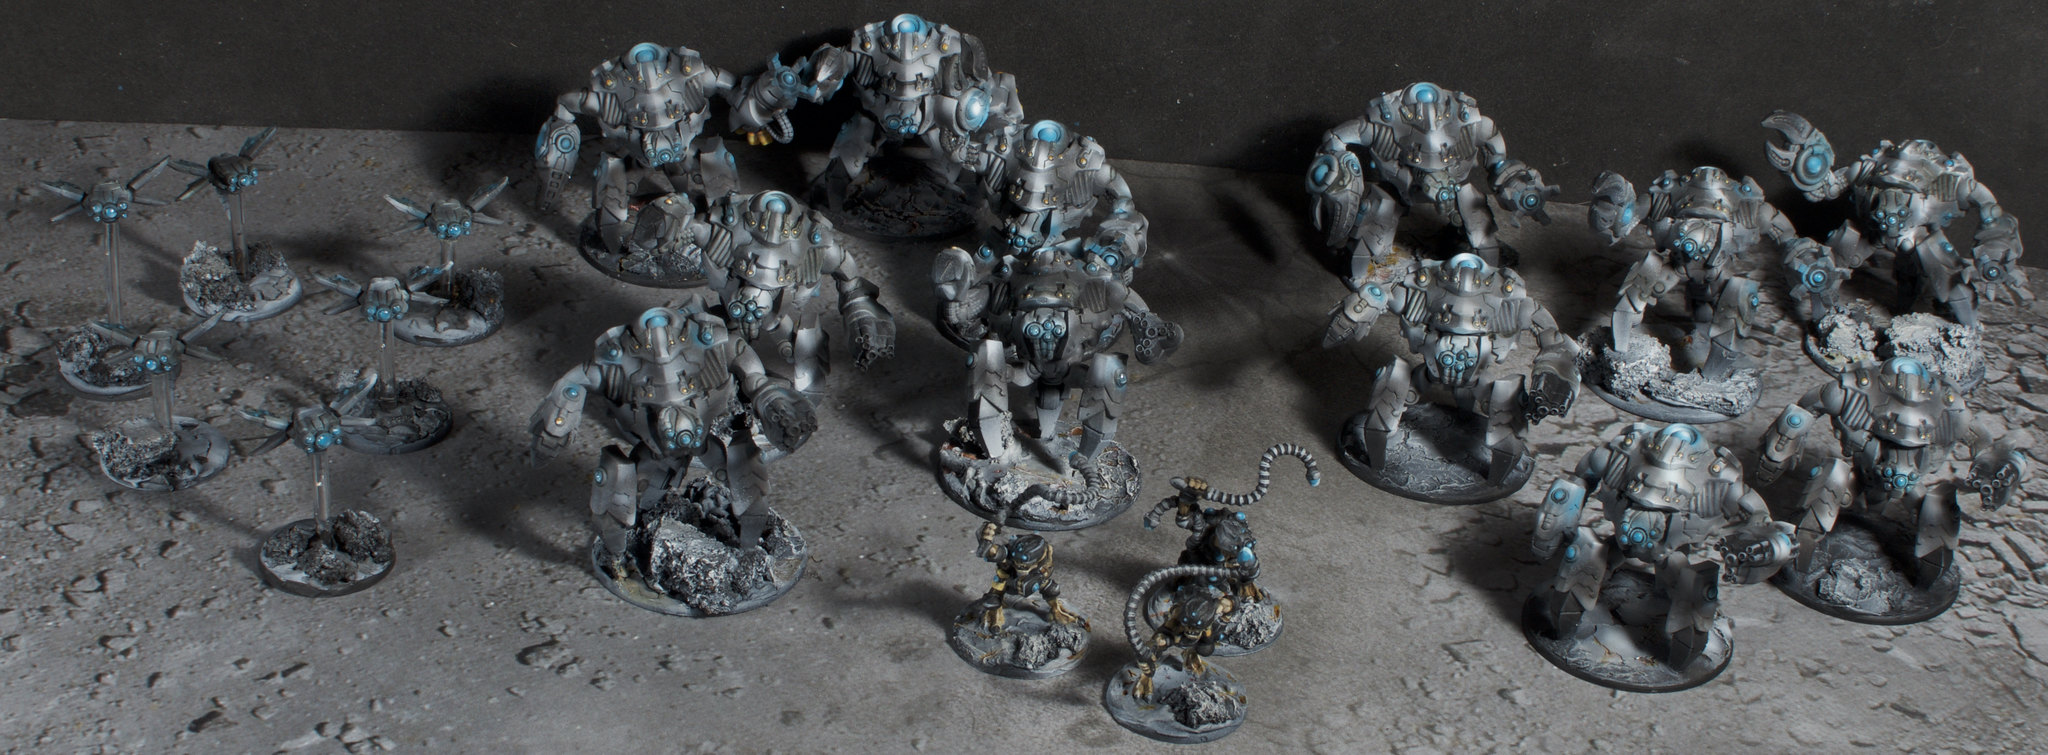 Ghar Army Group Shot